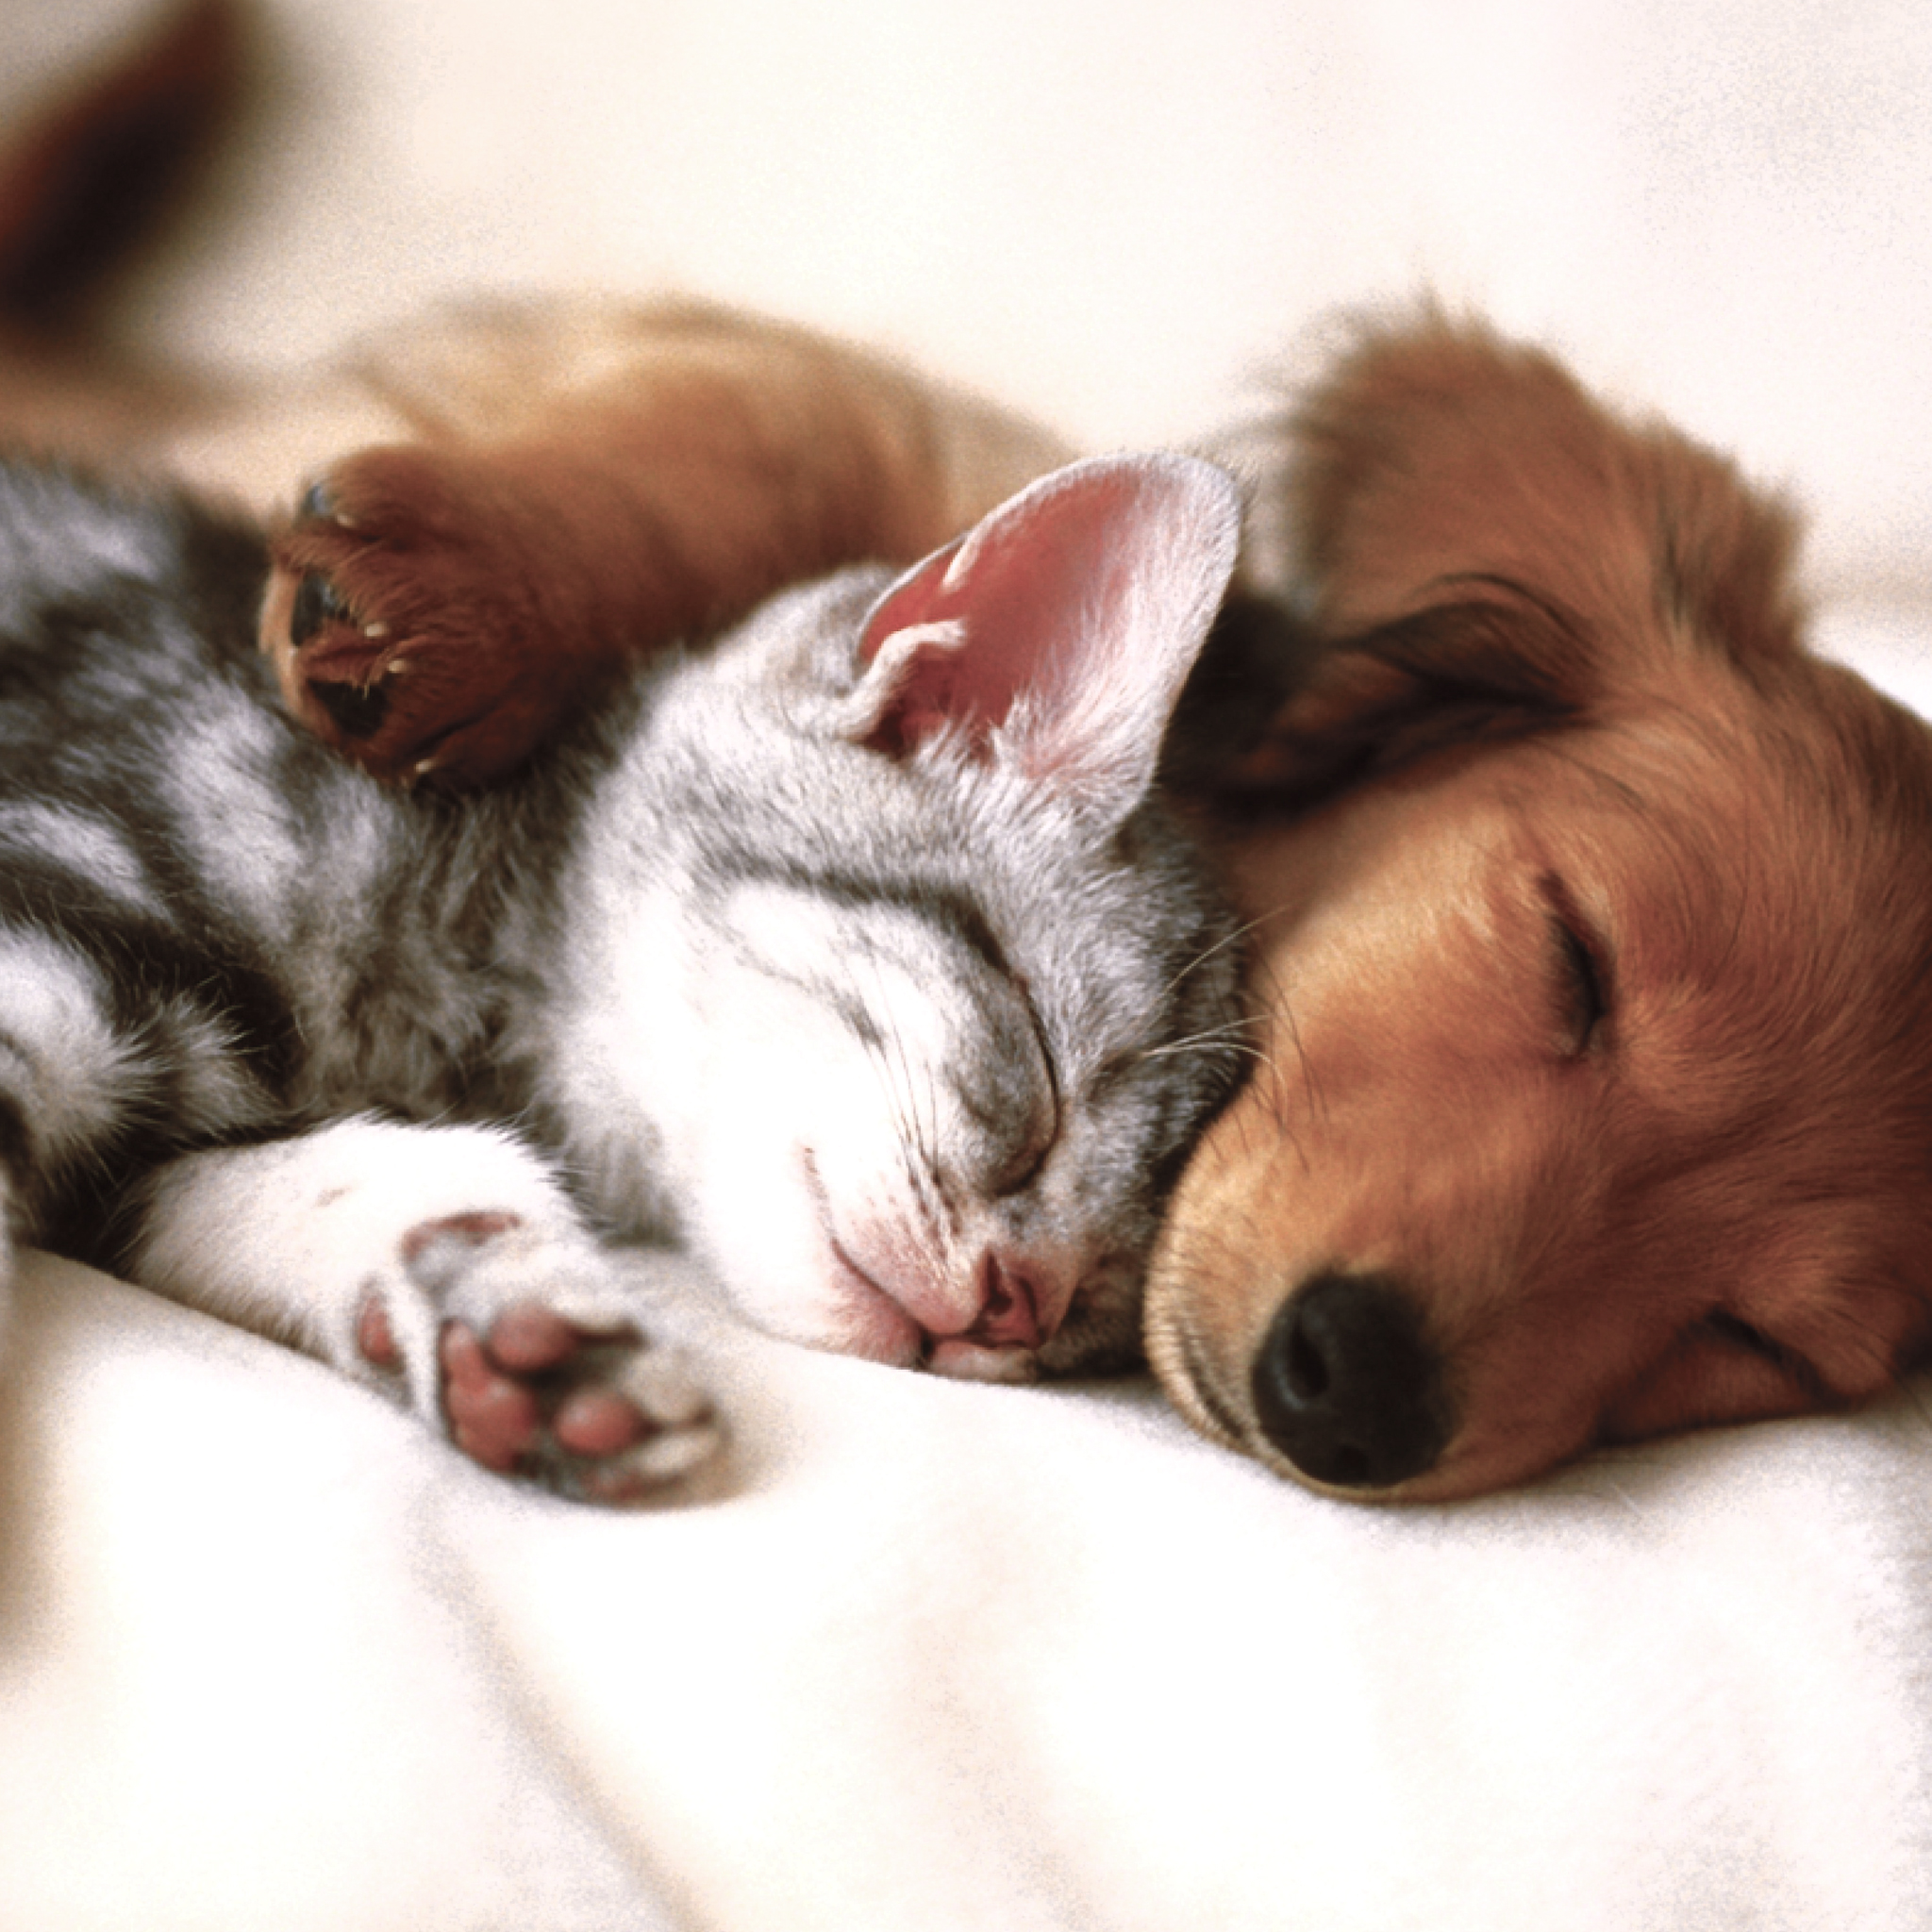 Cat-and-Dog-3Wallpapers-ipad-Retina